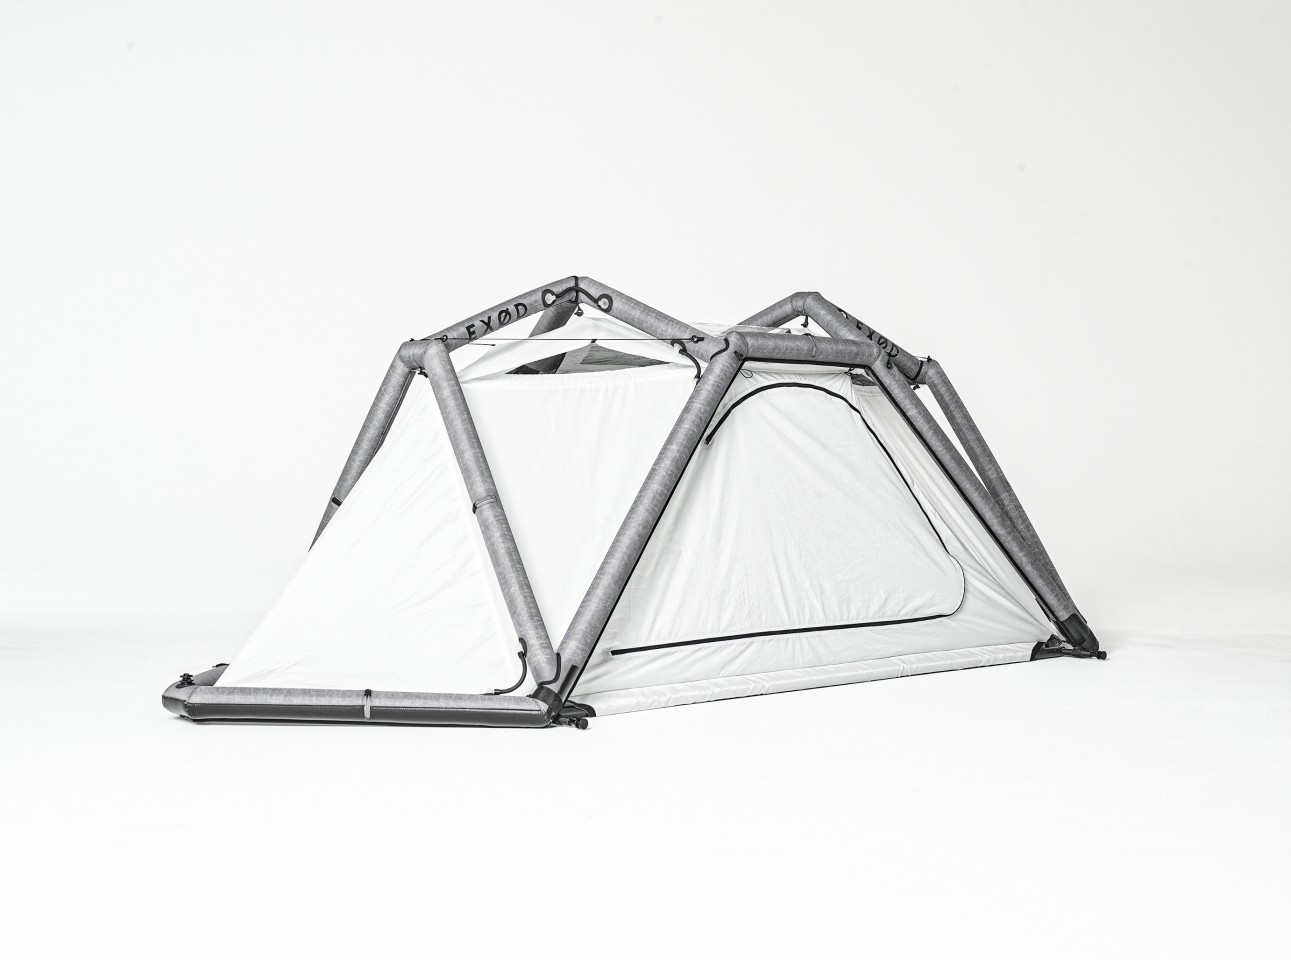 Exod plans to sell the Home just as a ground tent and as a full kit with hanging hardware